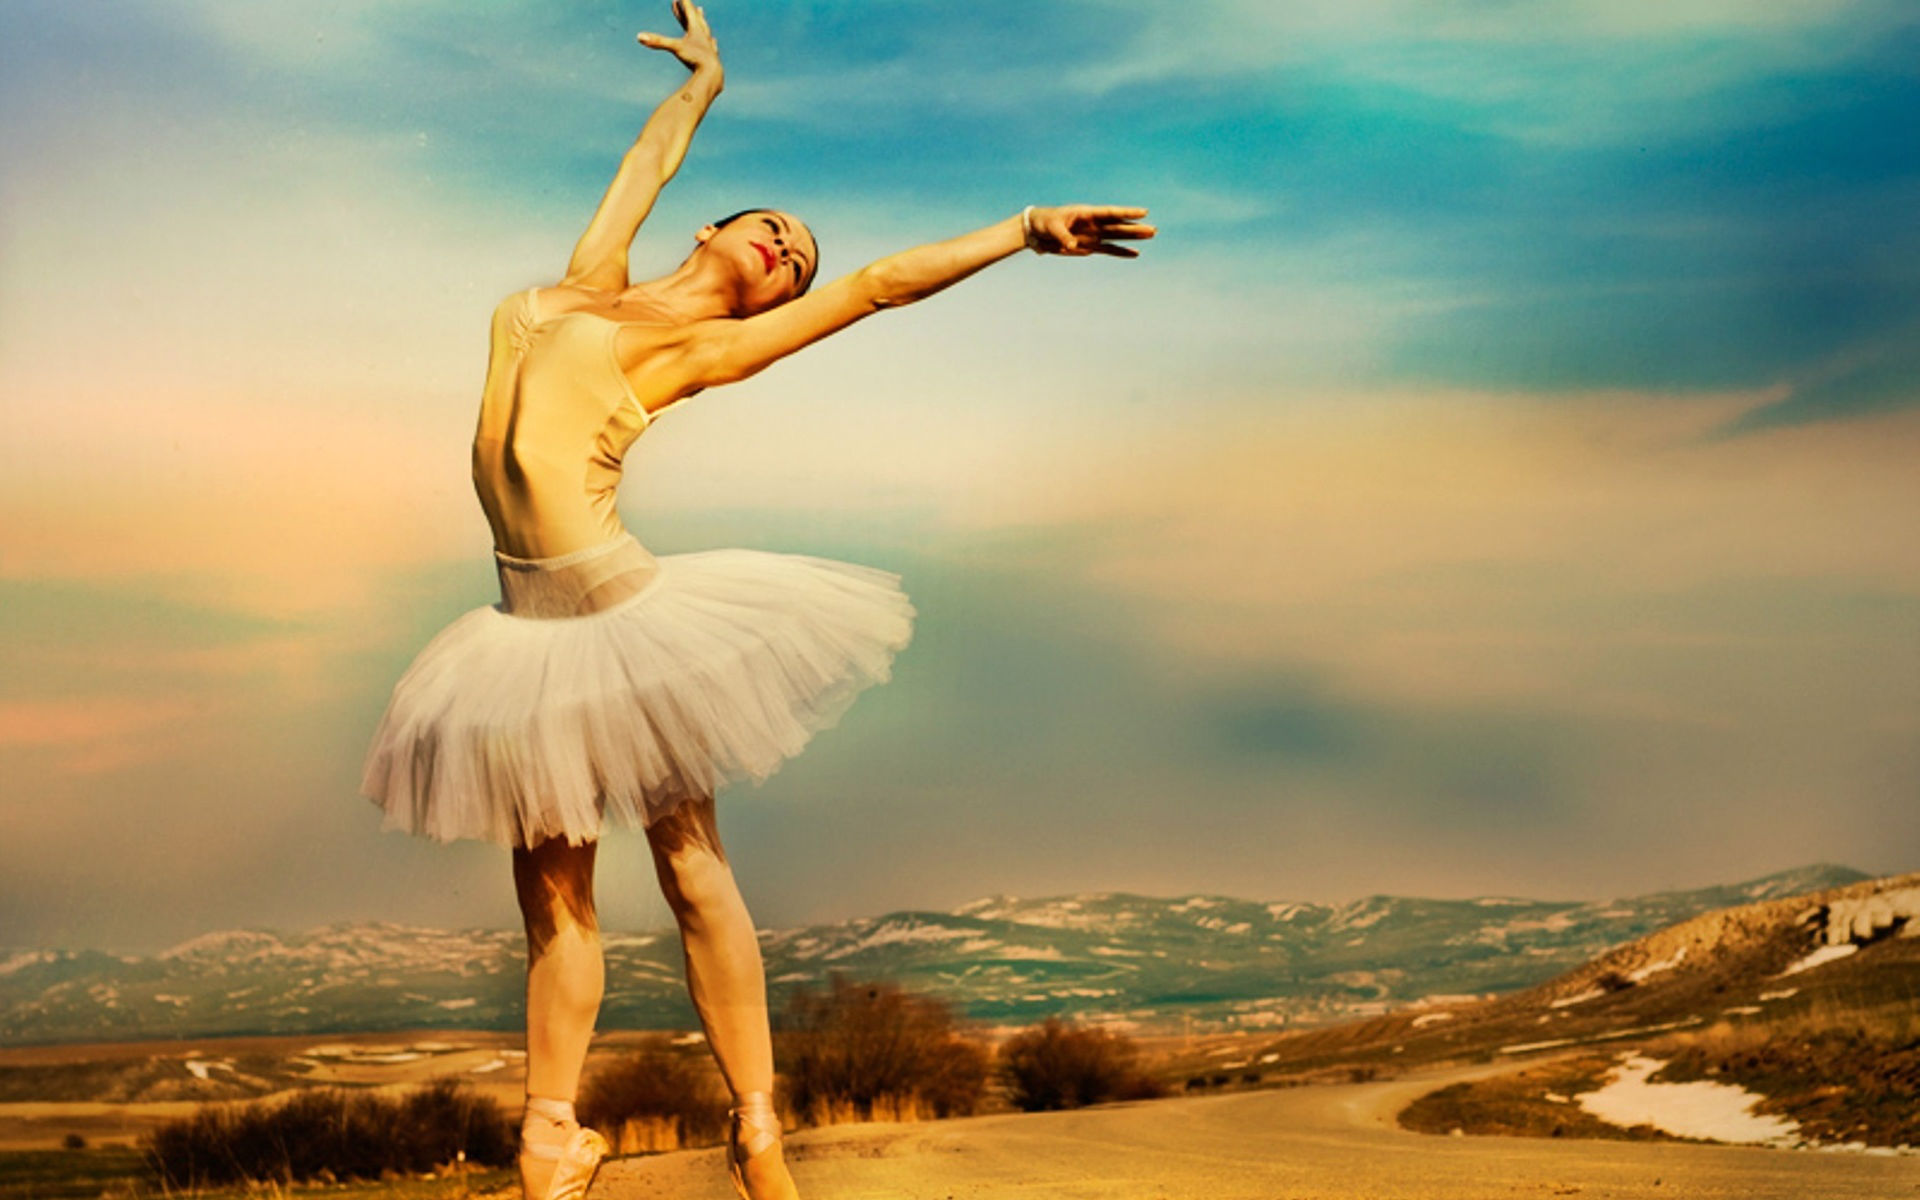 Ballet Dance Wallpapers Hd Dodskypict: Dance Wallpapers, Pictures, Images